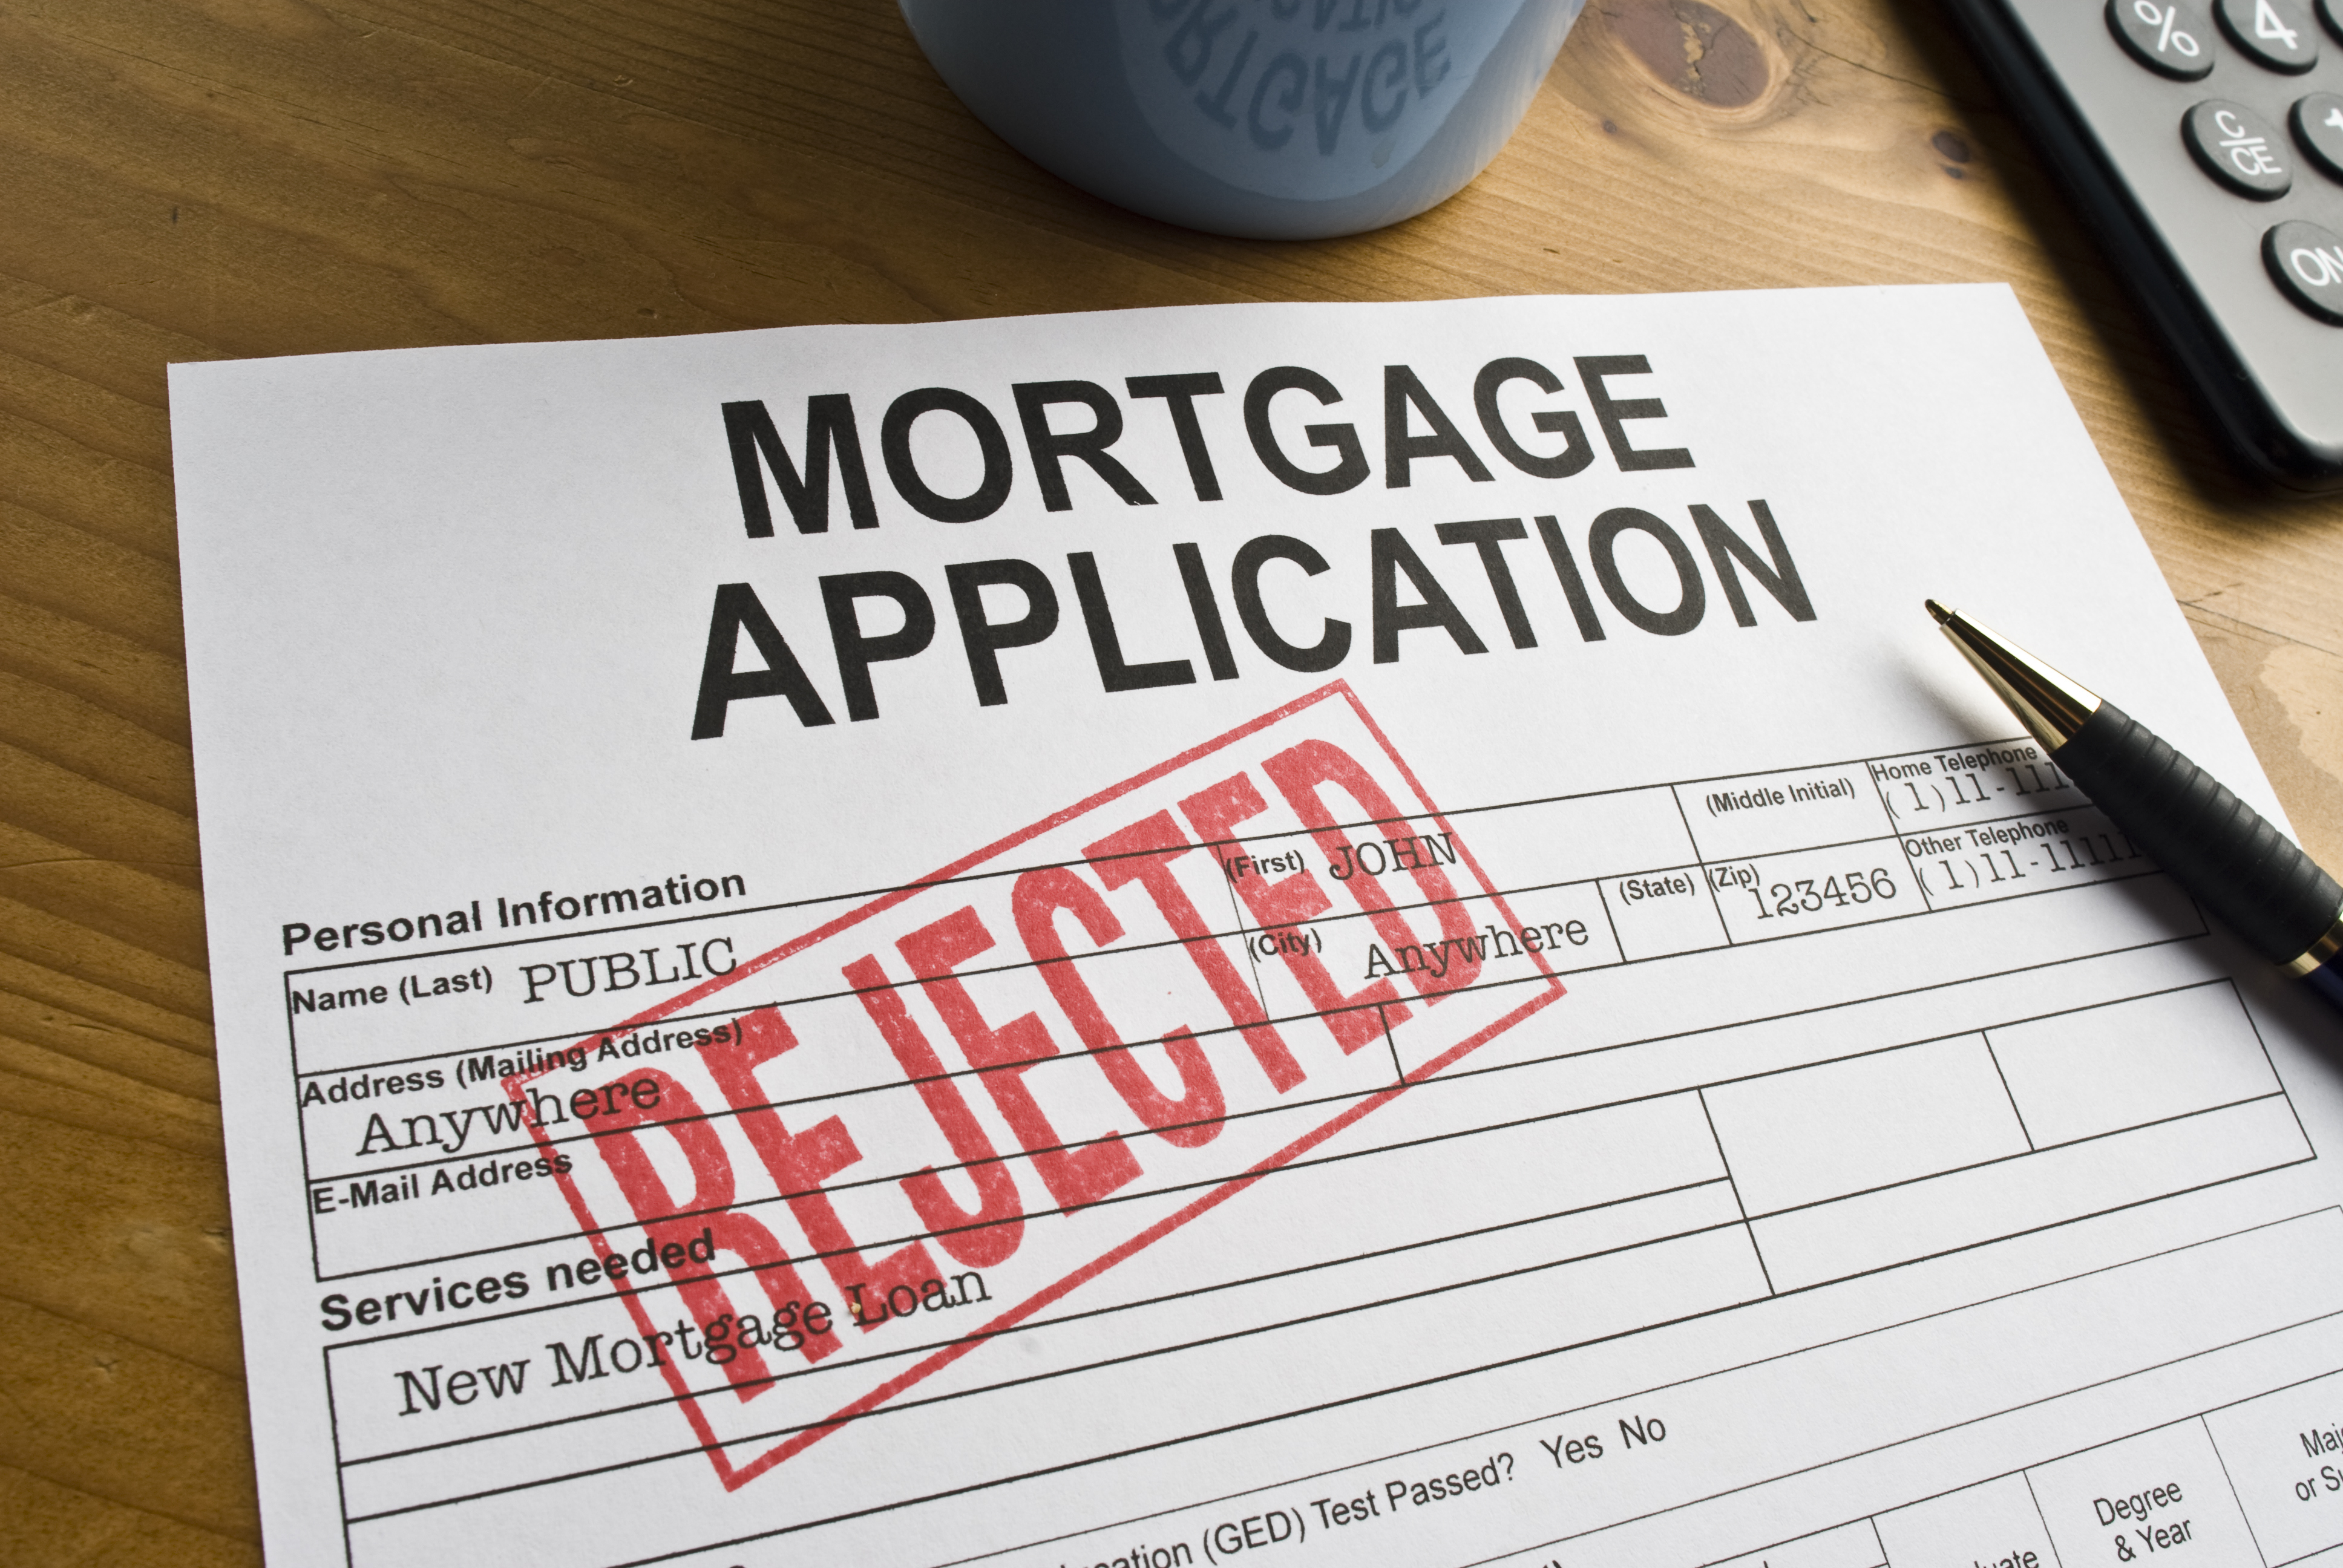 How Can I Get My Deposit Back If My Mortgage Application Is Declined